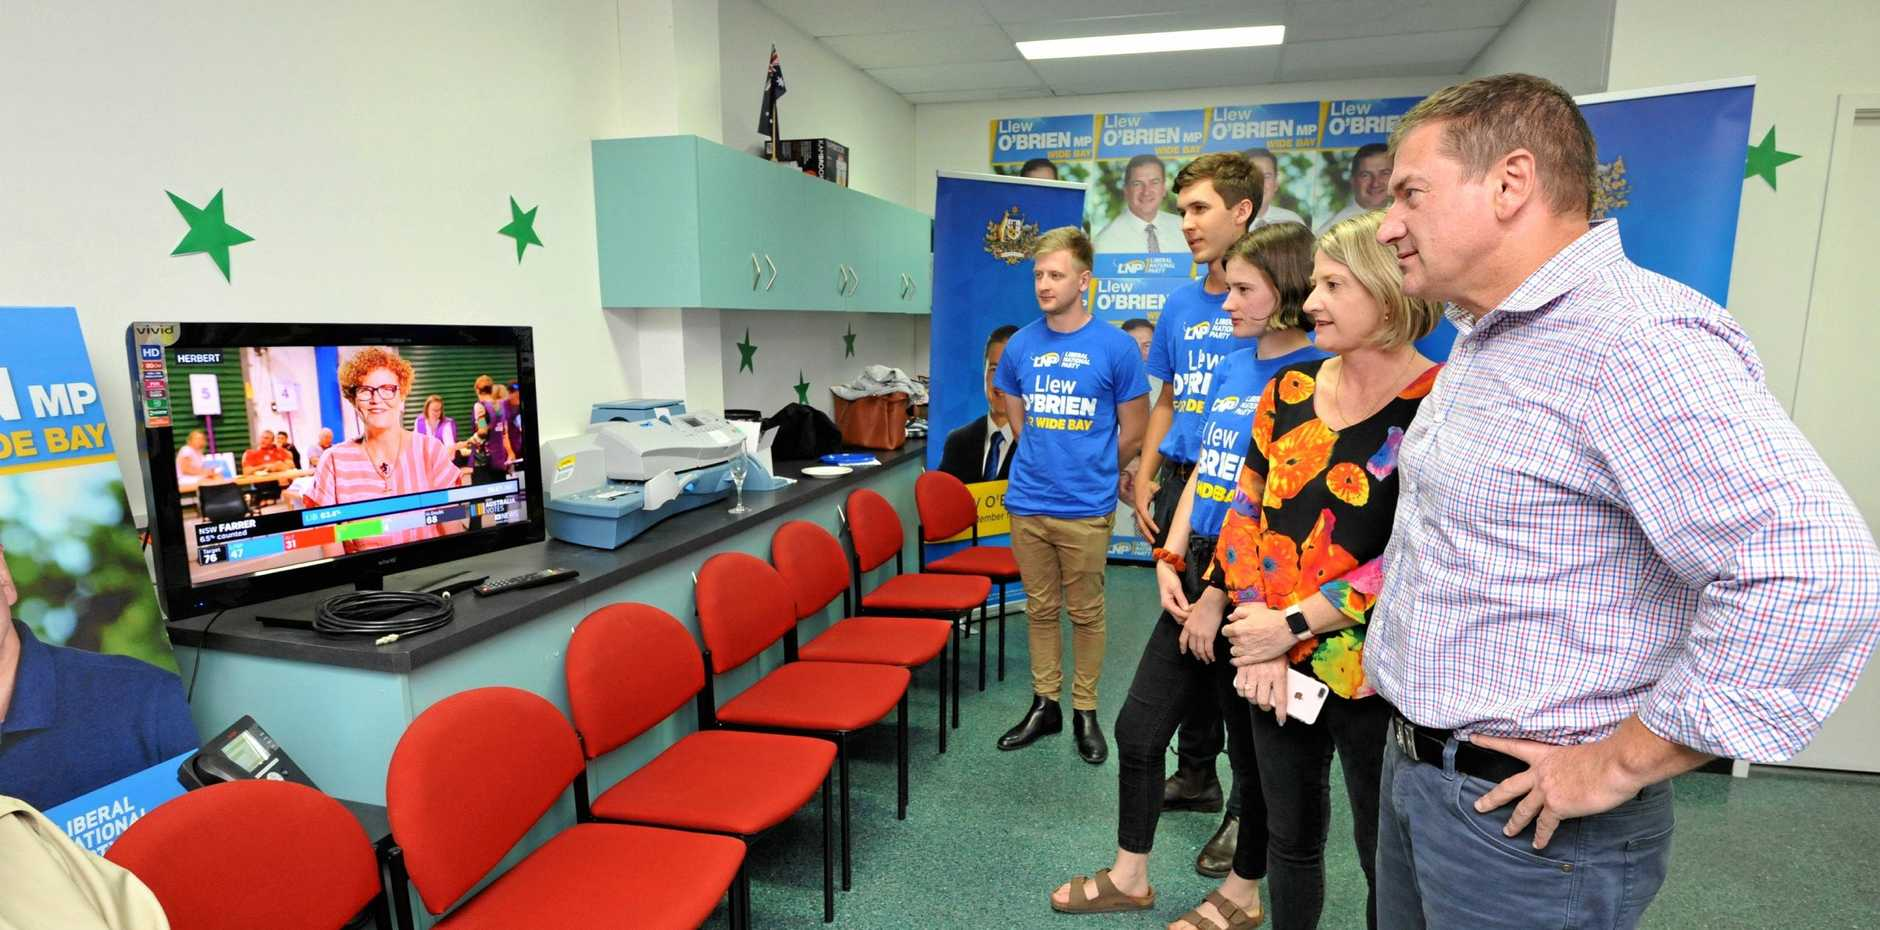 REGION'S WISHLISTS: Wide Bay MP Llew O'Brien and his family watch the election count on TV. The region's business leaders have called on Mr O'Brien and Hinkler MP Keith Pitt to start delivering their infrastructure plans for the Fraser Coast region after the Coalition was swept to victory.